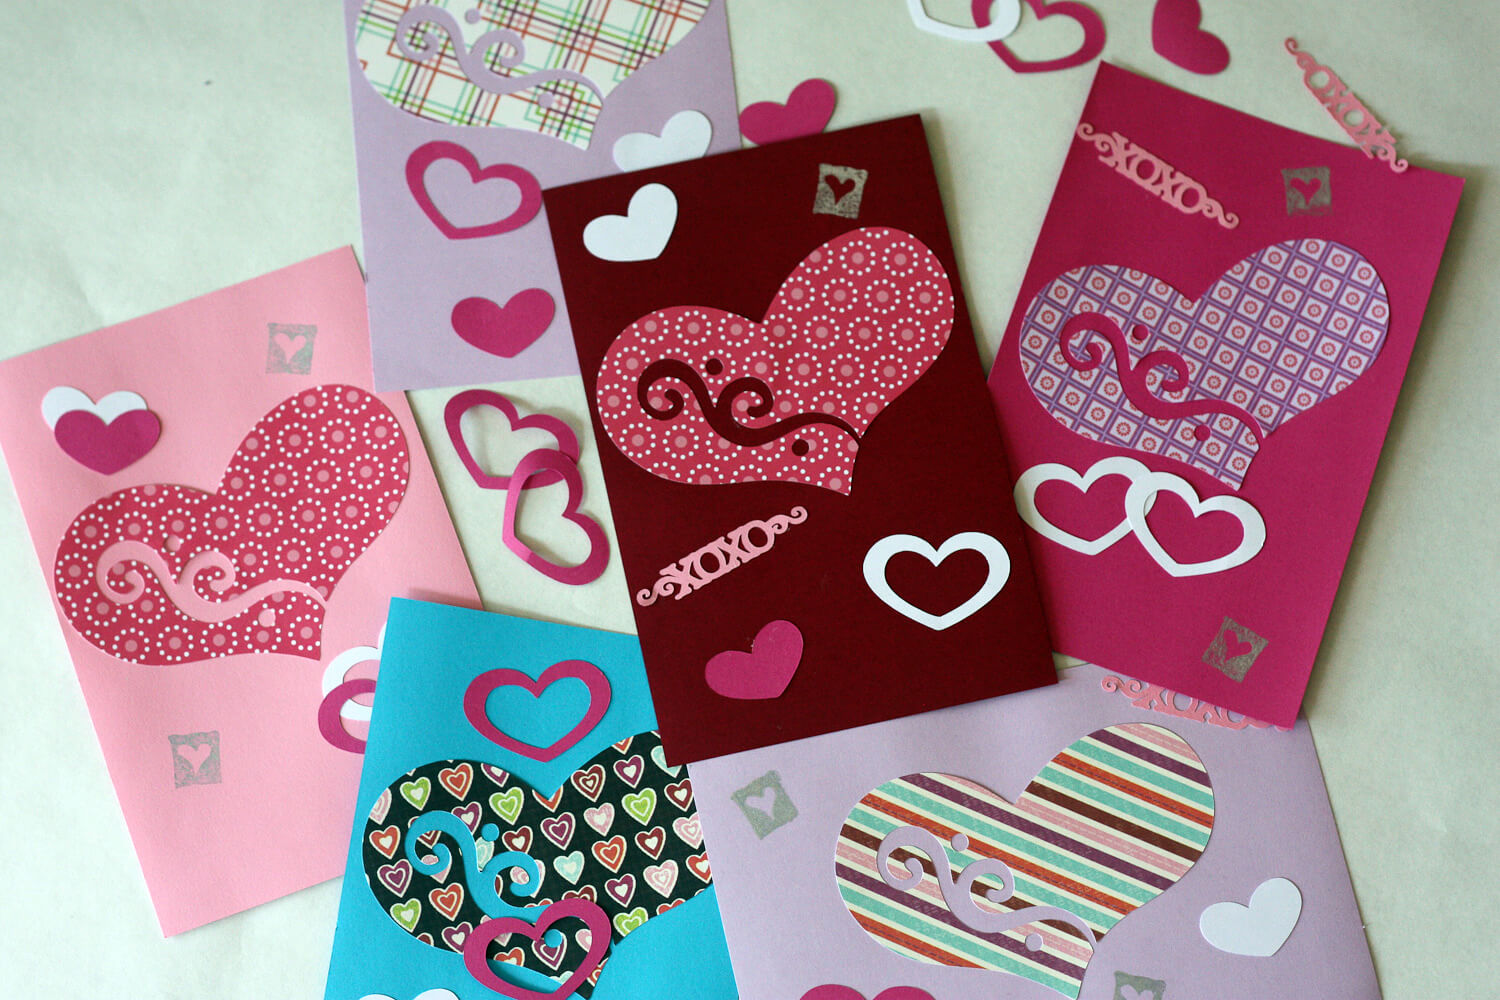 45 Homemade Valentines Day T Ideas For Him